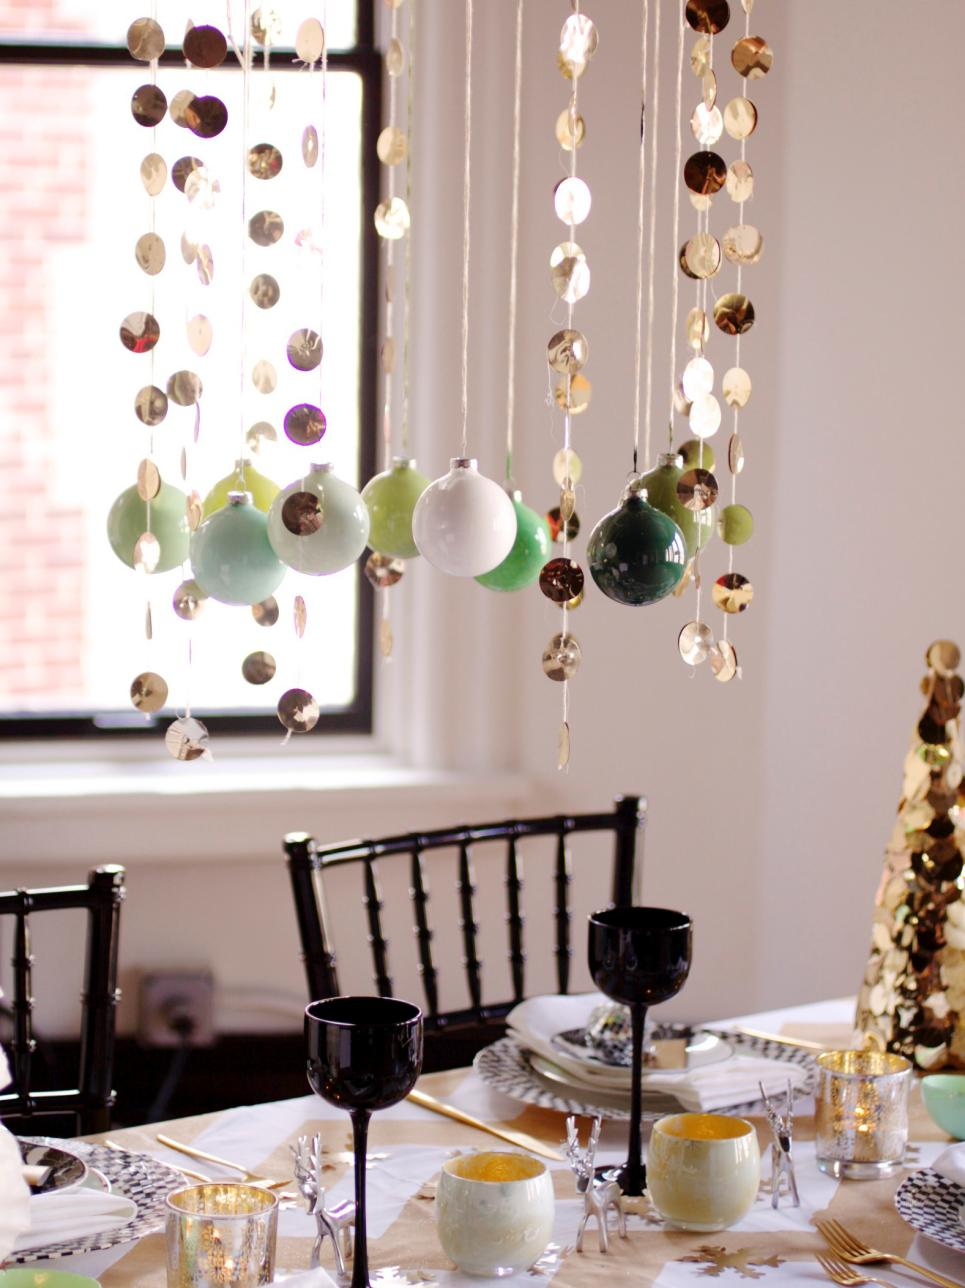 Diy ombre ornament centerpiece